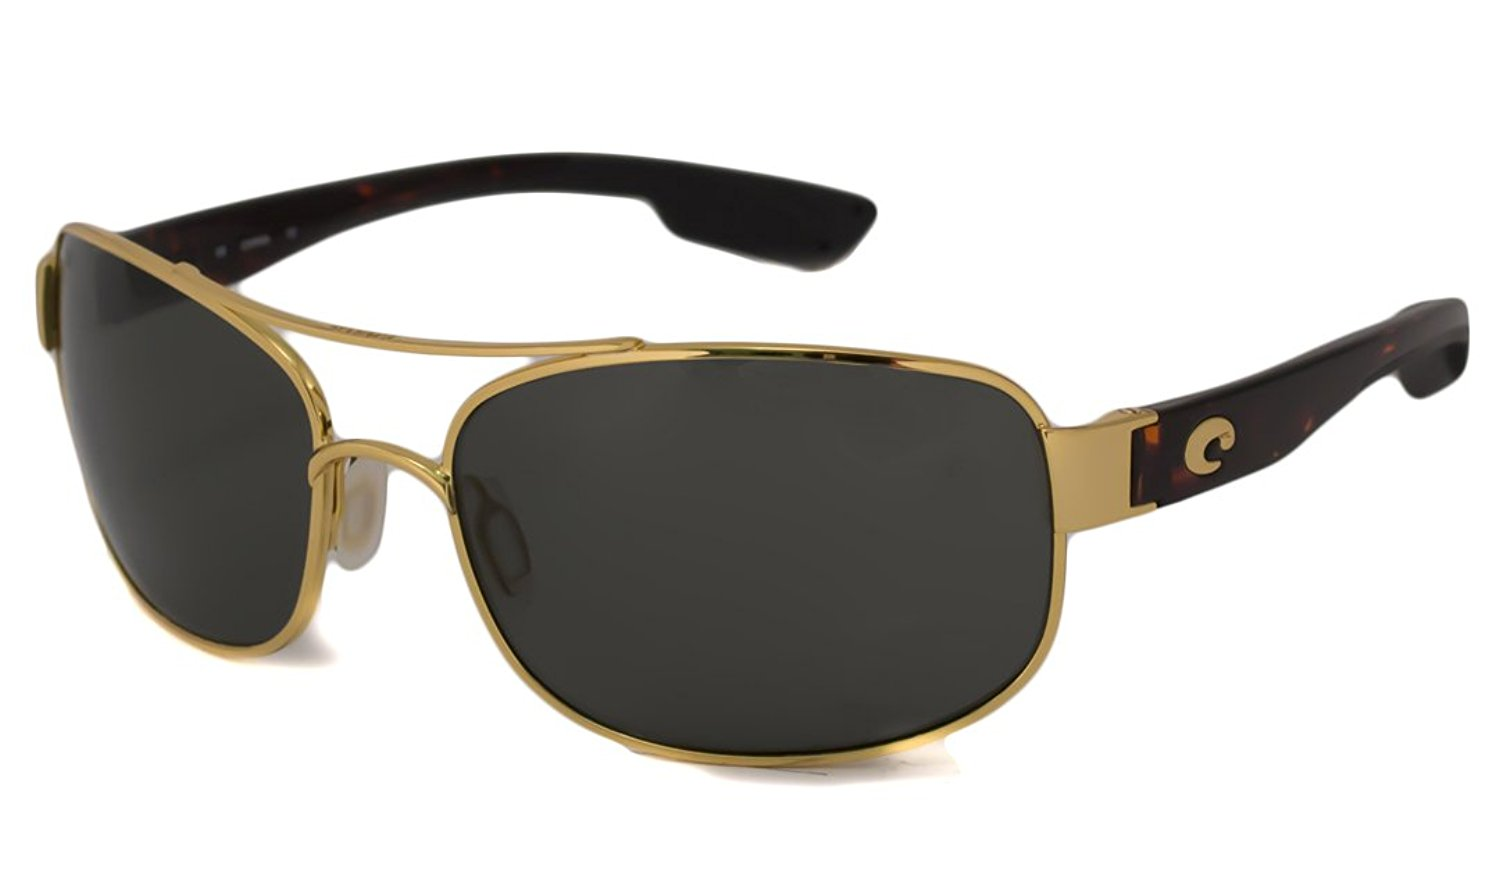 6c87568f58a50 Get Quotations · Costa Del Mar Sunglasses - Tower- Plastic   Frame  Gold  Lens  Polarized Gray